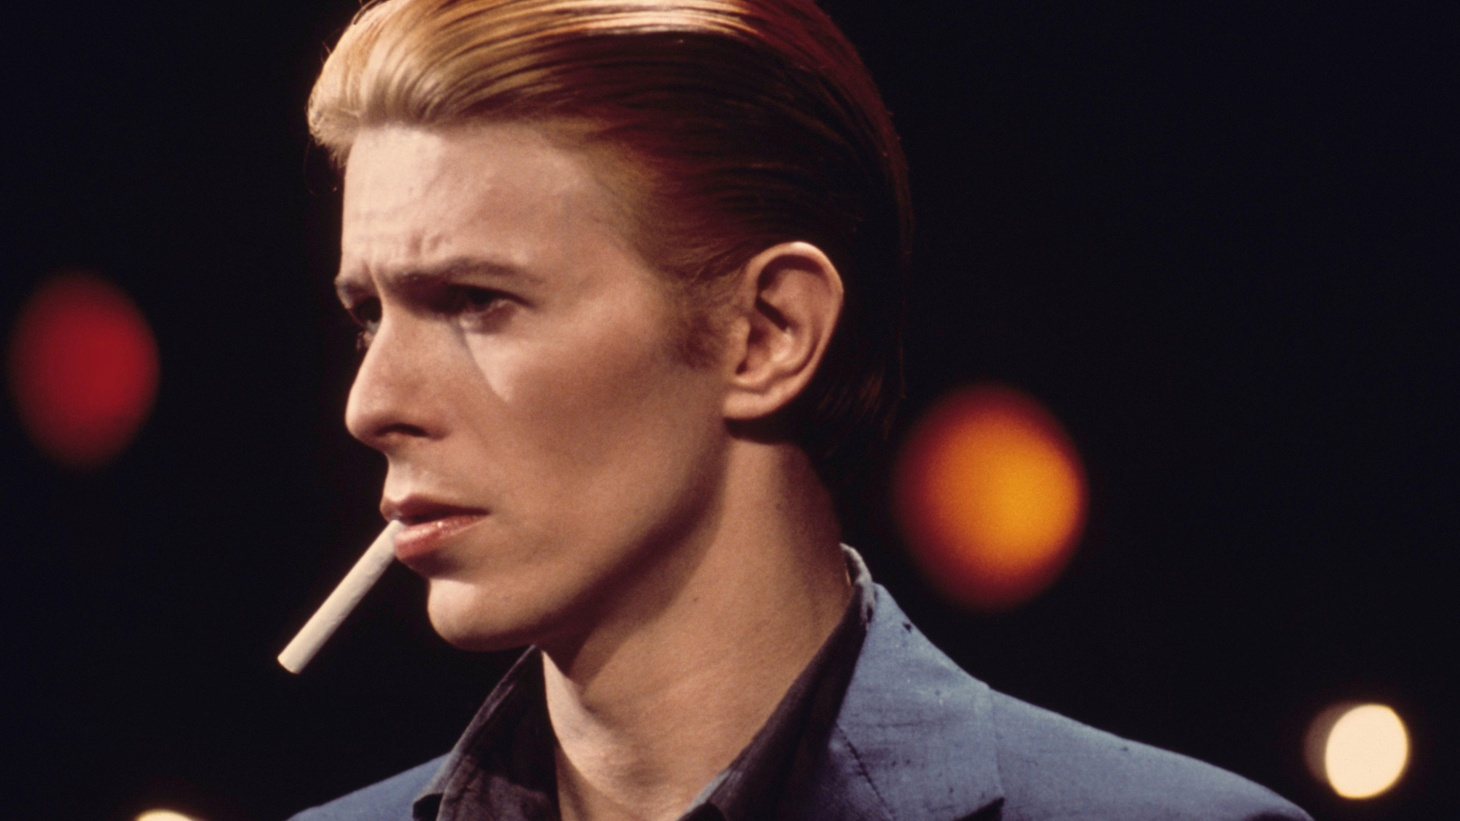 Today, my show was purely Bowie inspired – be it collaborations, artists he influenced, covers or purely songs in tribute.